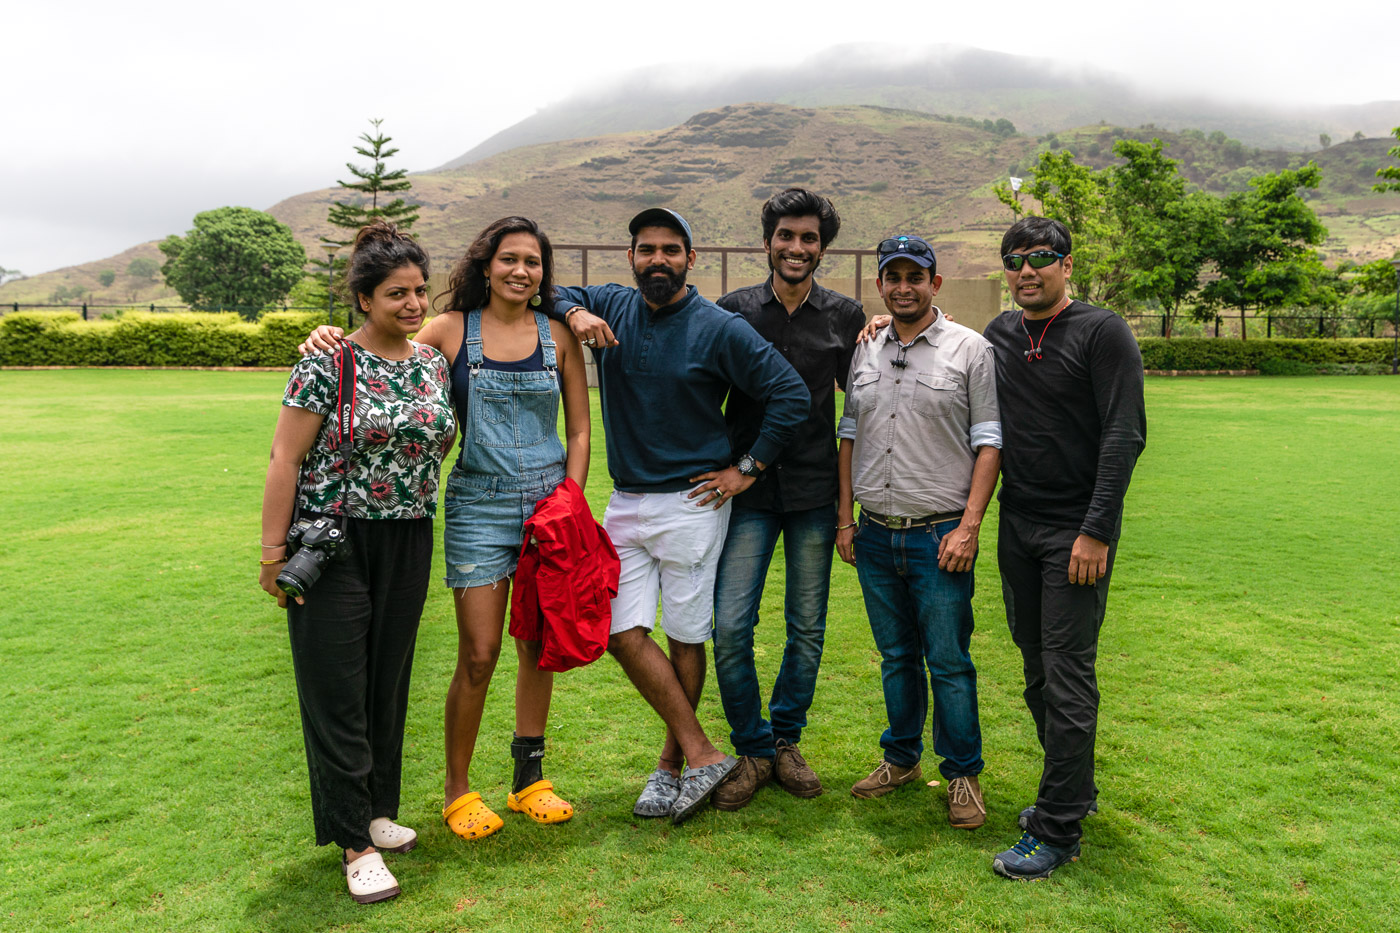 The_Sassy_Pilgrim_Bhandardara_Nerolac_Photowalk_Igatpuri_Maharashtra_India_Fireflies_Festival_Monsoon_Weekend_Getaway_Mumbai_Pune_Travel_Blog_Solo_Traveller_Indian_Girl